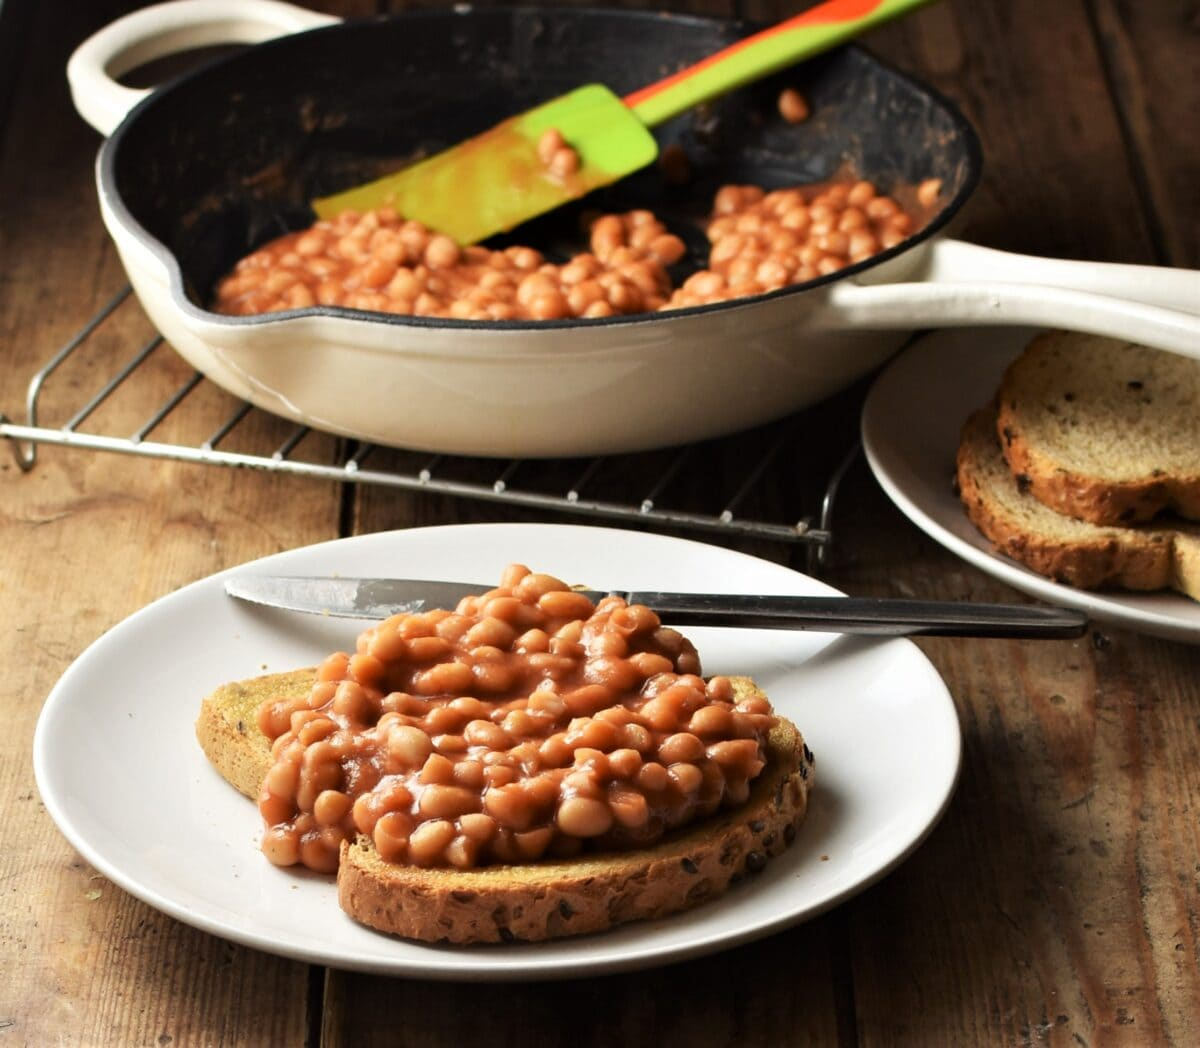 Side view of toast with baked beans and knife on white plate with beans in skillet in background.